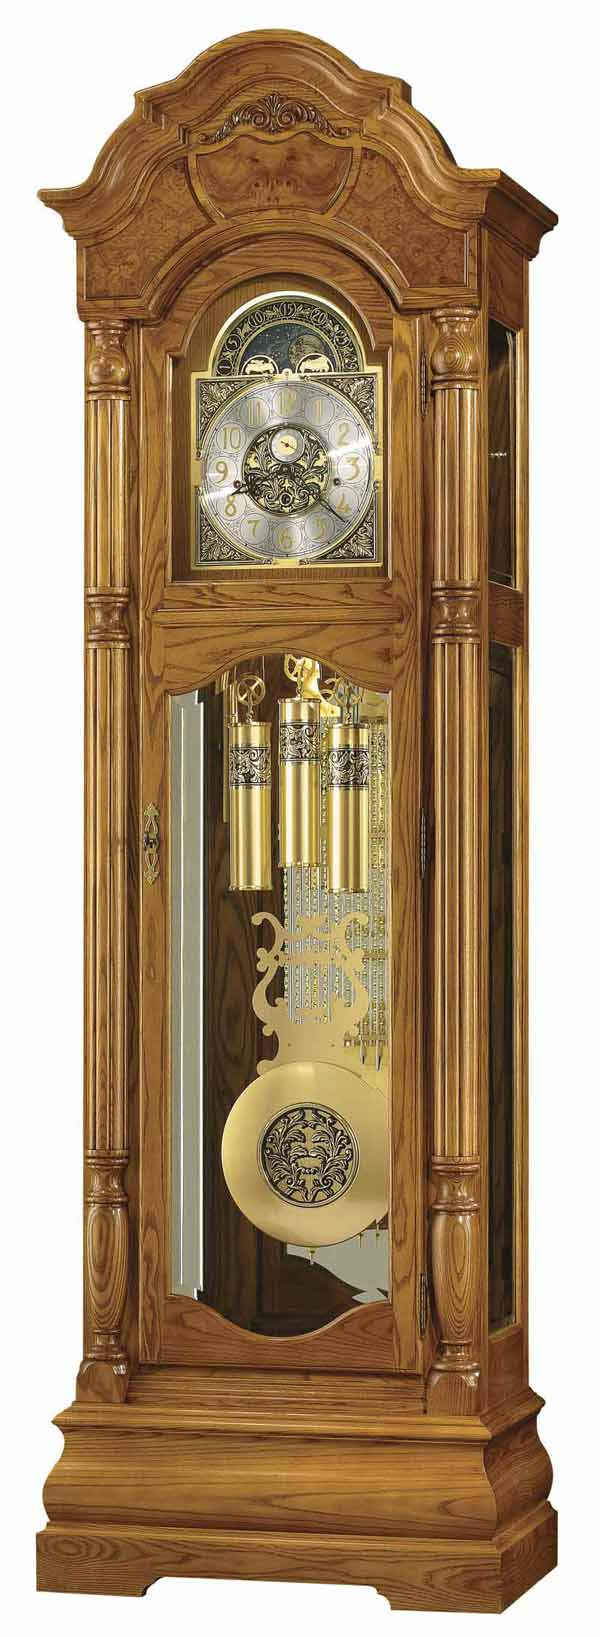 Detailed Image Of The Howard Miller Scarborough 611 144 Grandfather Clock